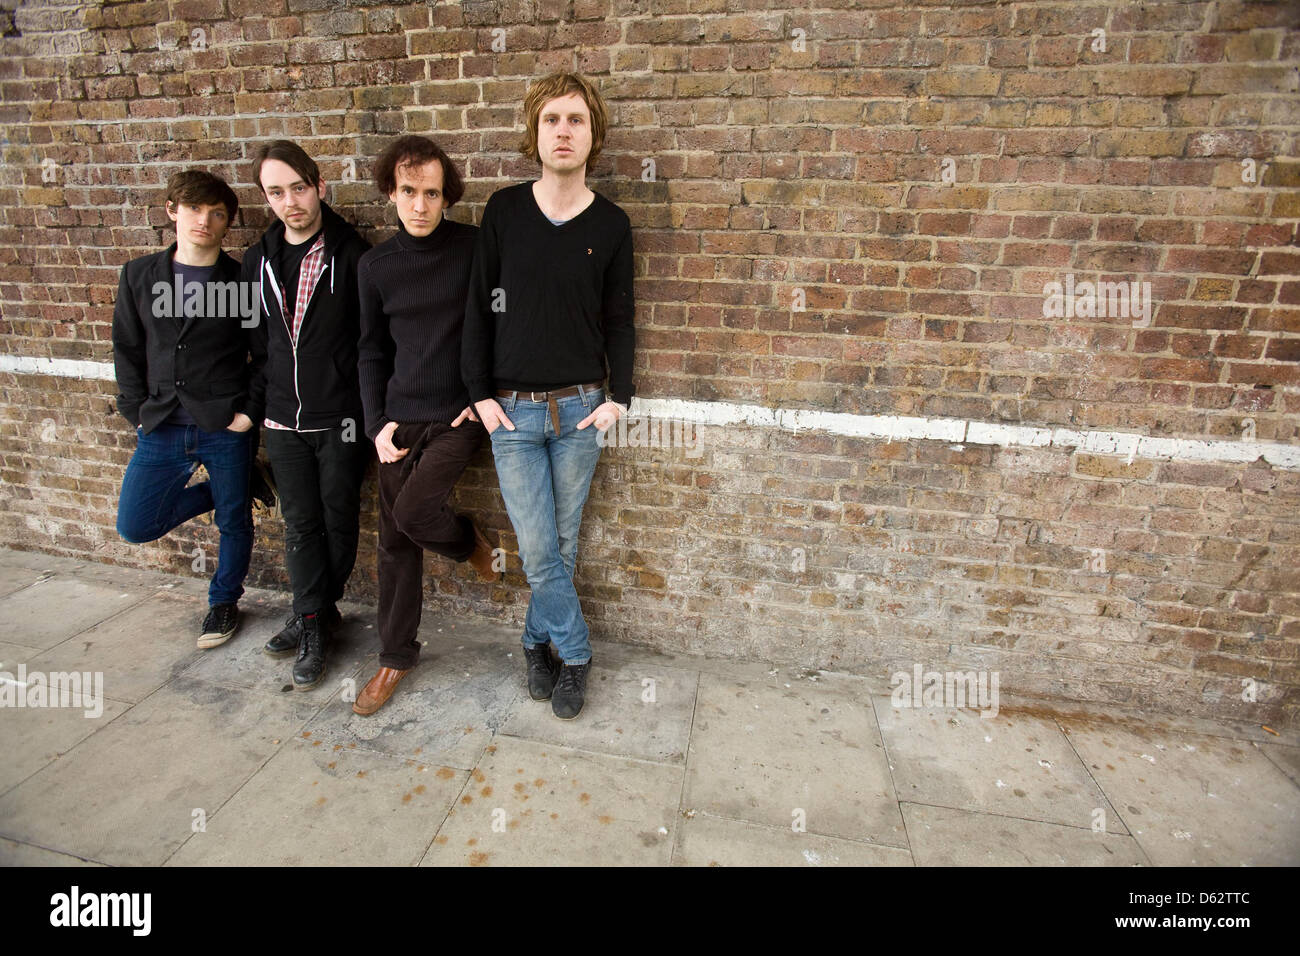 Longview, English indie rock band photographed in Camden, London, England. Stock Photo